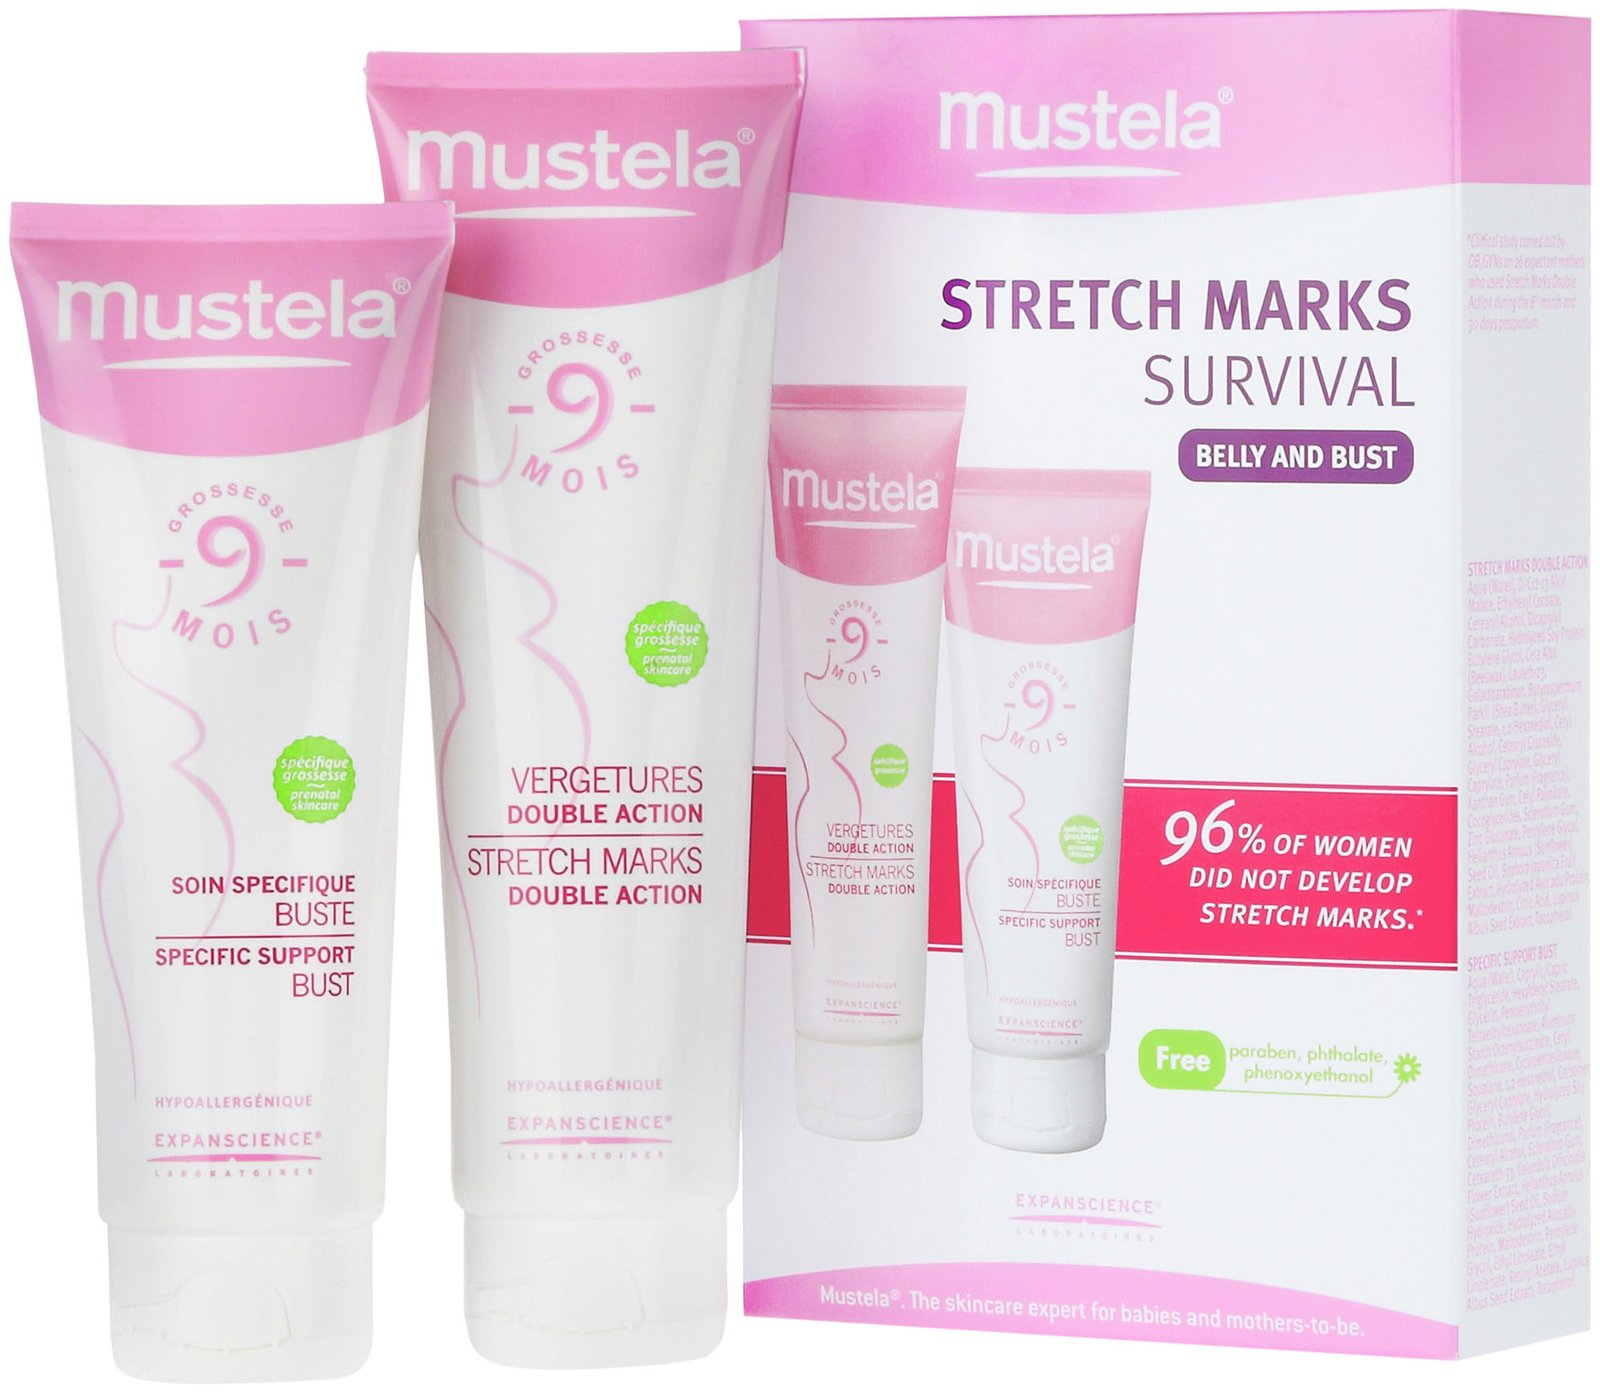 Mustela 9 Months Stretch Marks Double Action